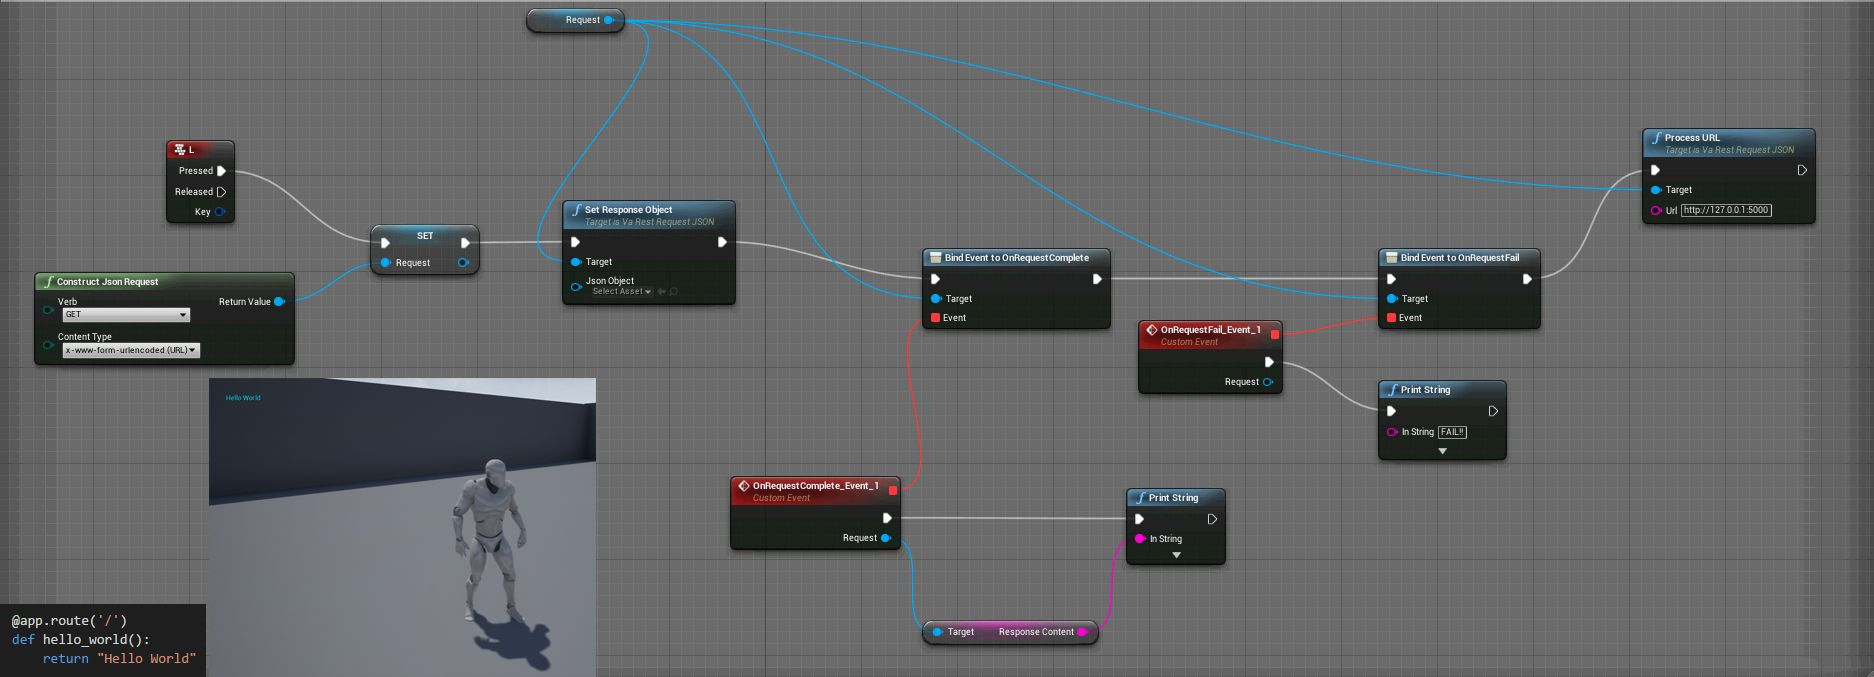 Ue4 varest with flask example 4 1874677 ue4 blueprint varest with flask example 4 malvernweather Choice Image